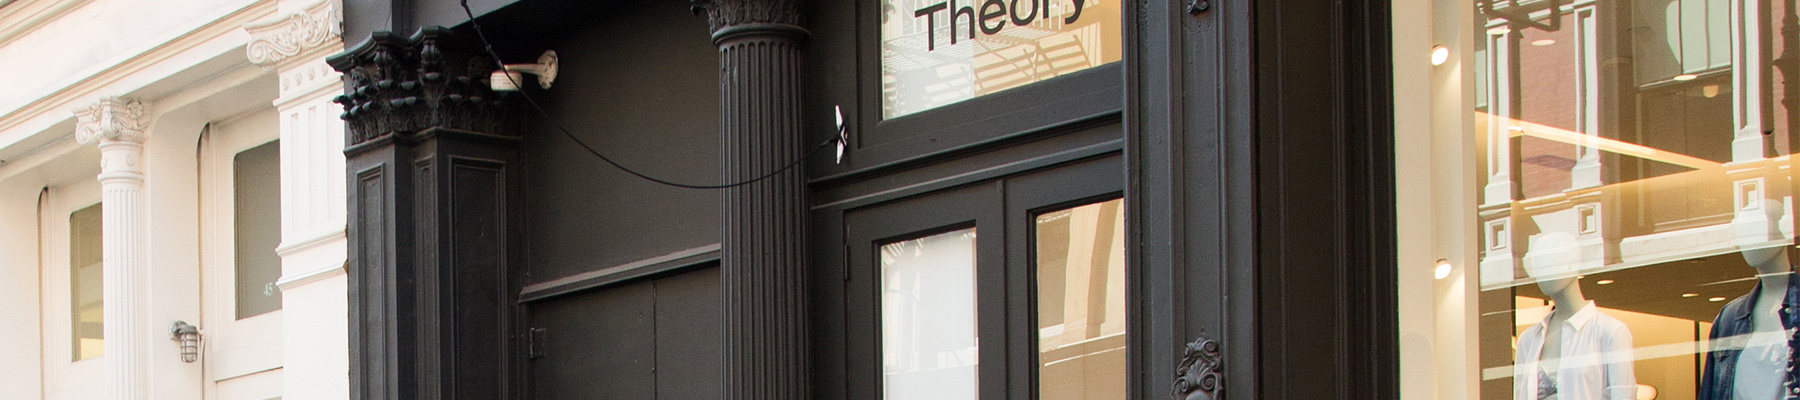 Store Locator | Theory | Contemporary Clothing for Women and Men